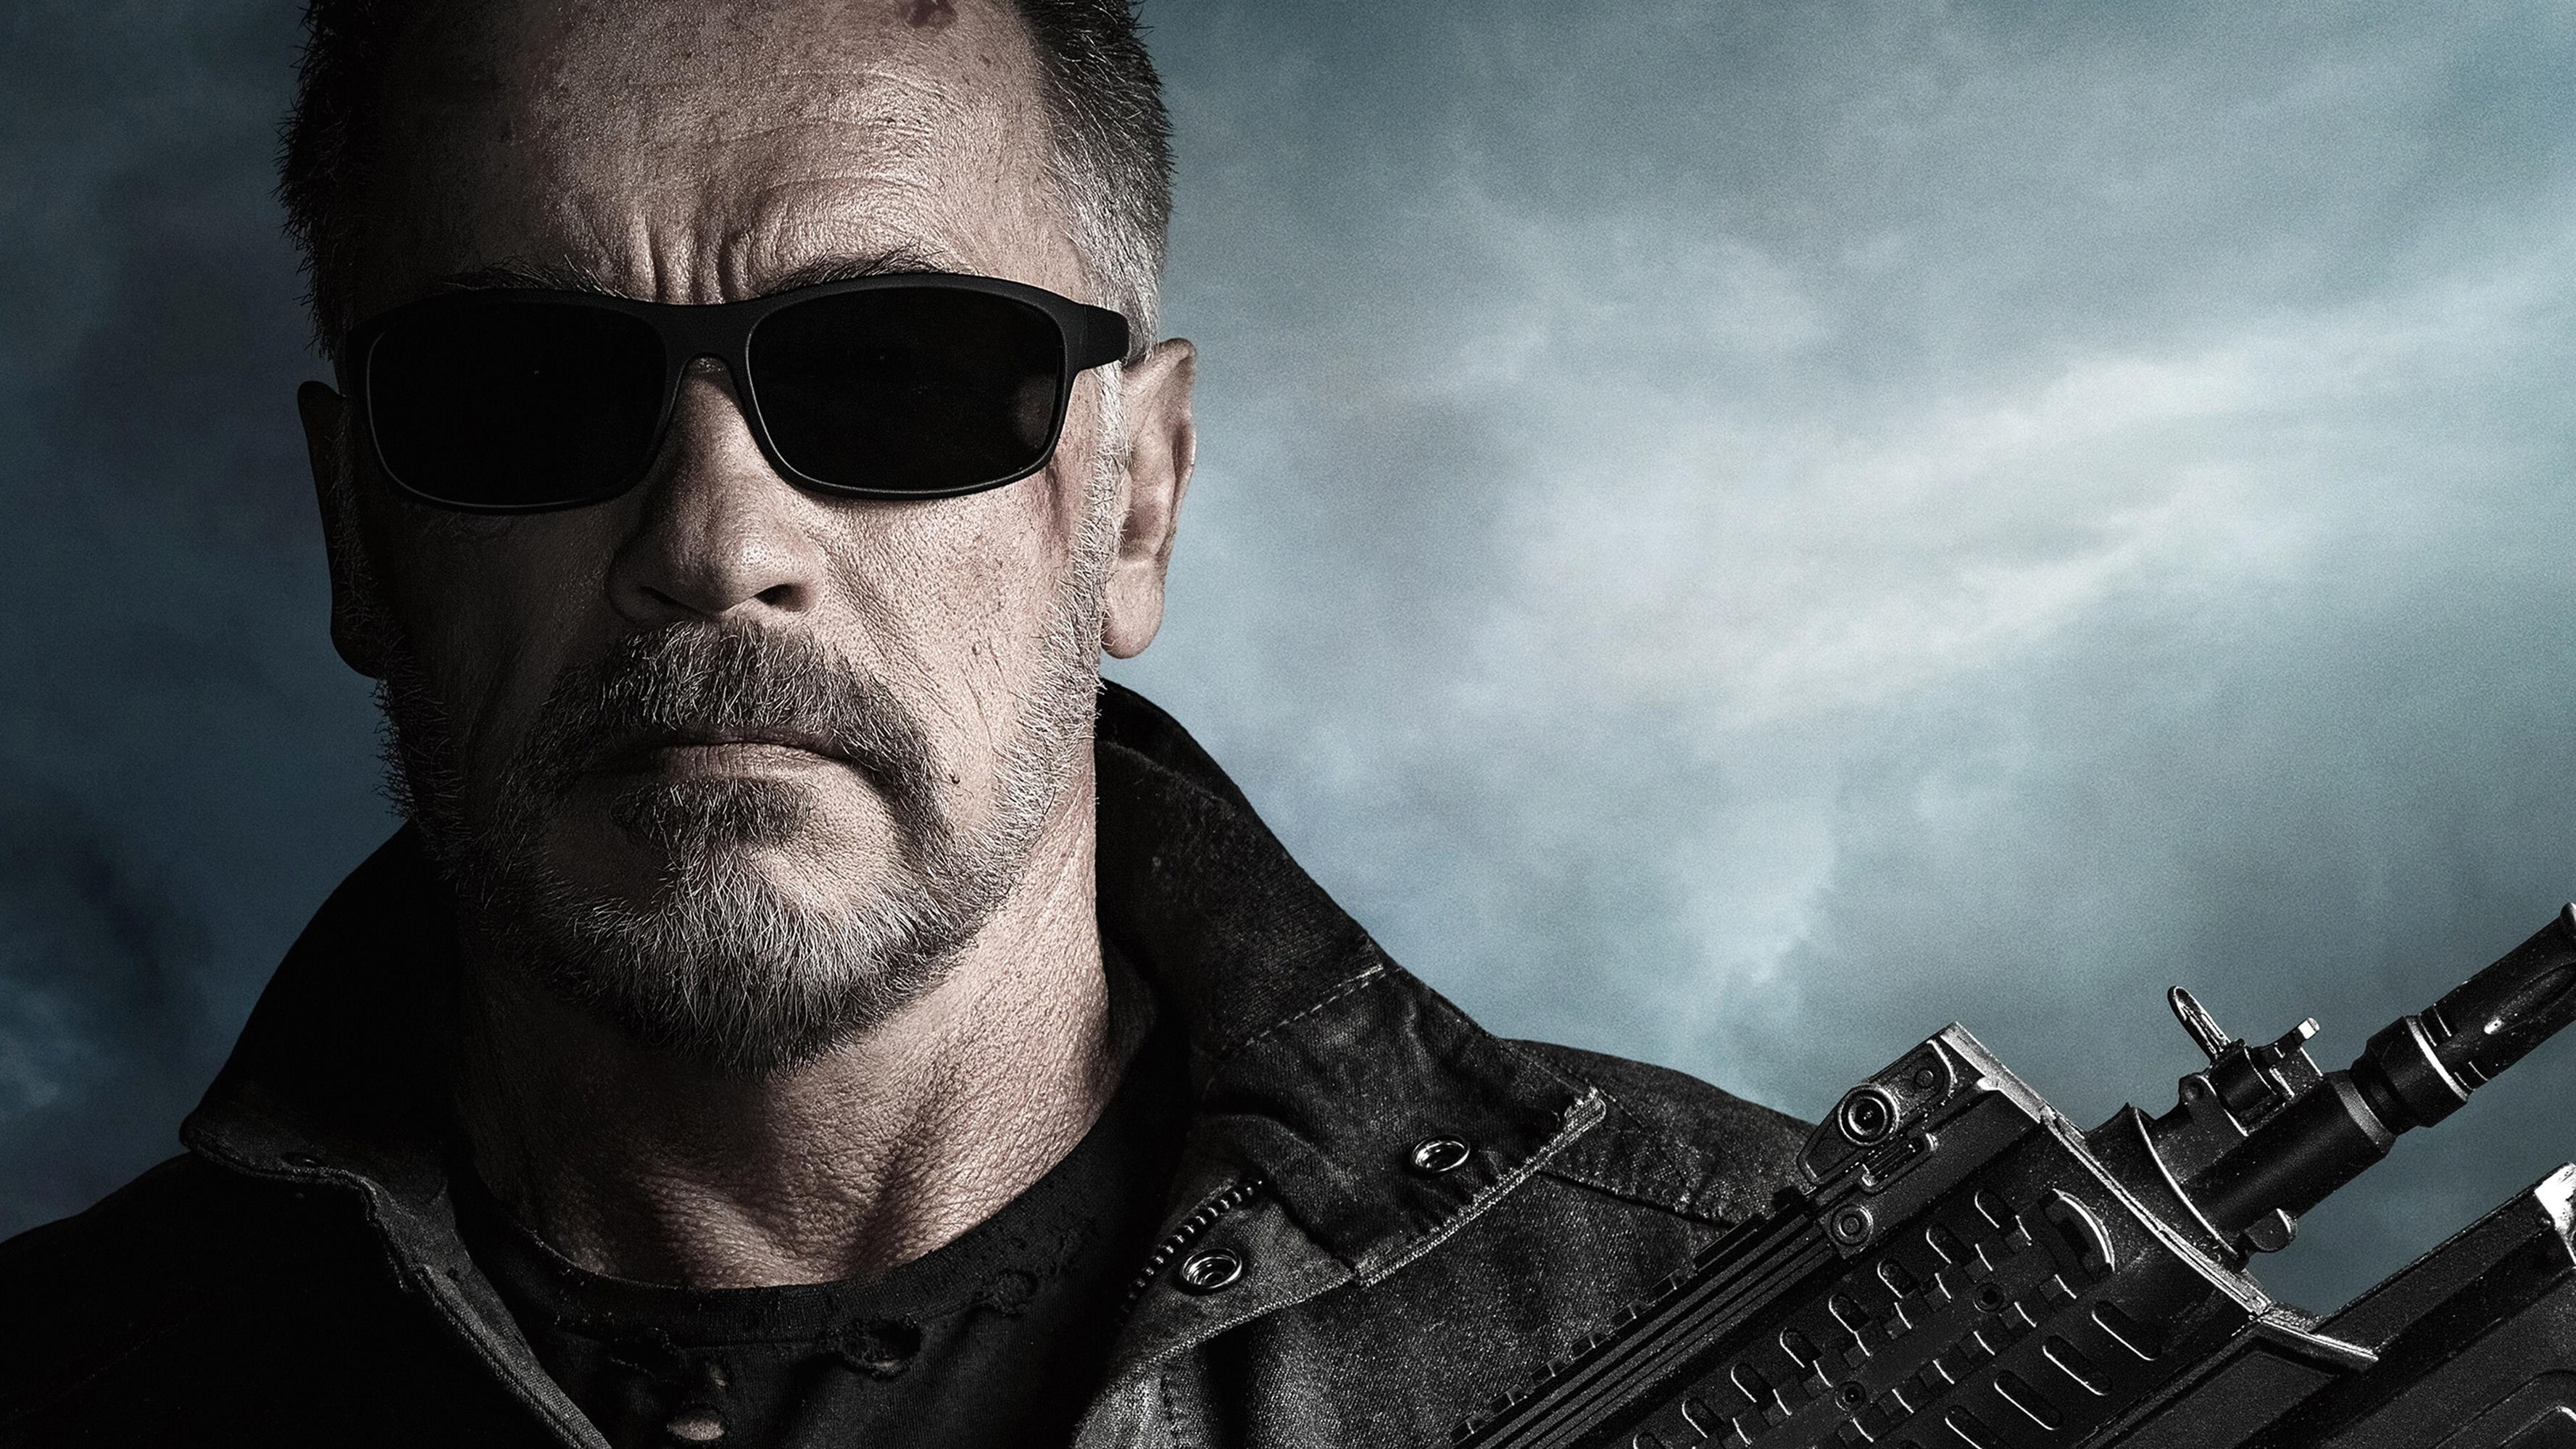 3554x1999 4K Wallpaper of Terminator Dark Fate Actor Arnold Schwarzenegger